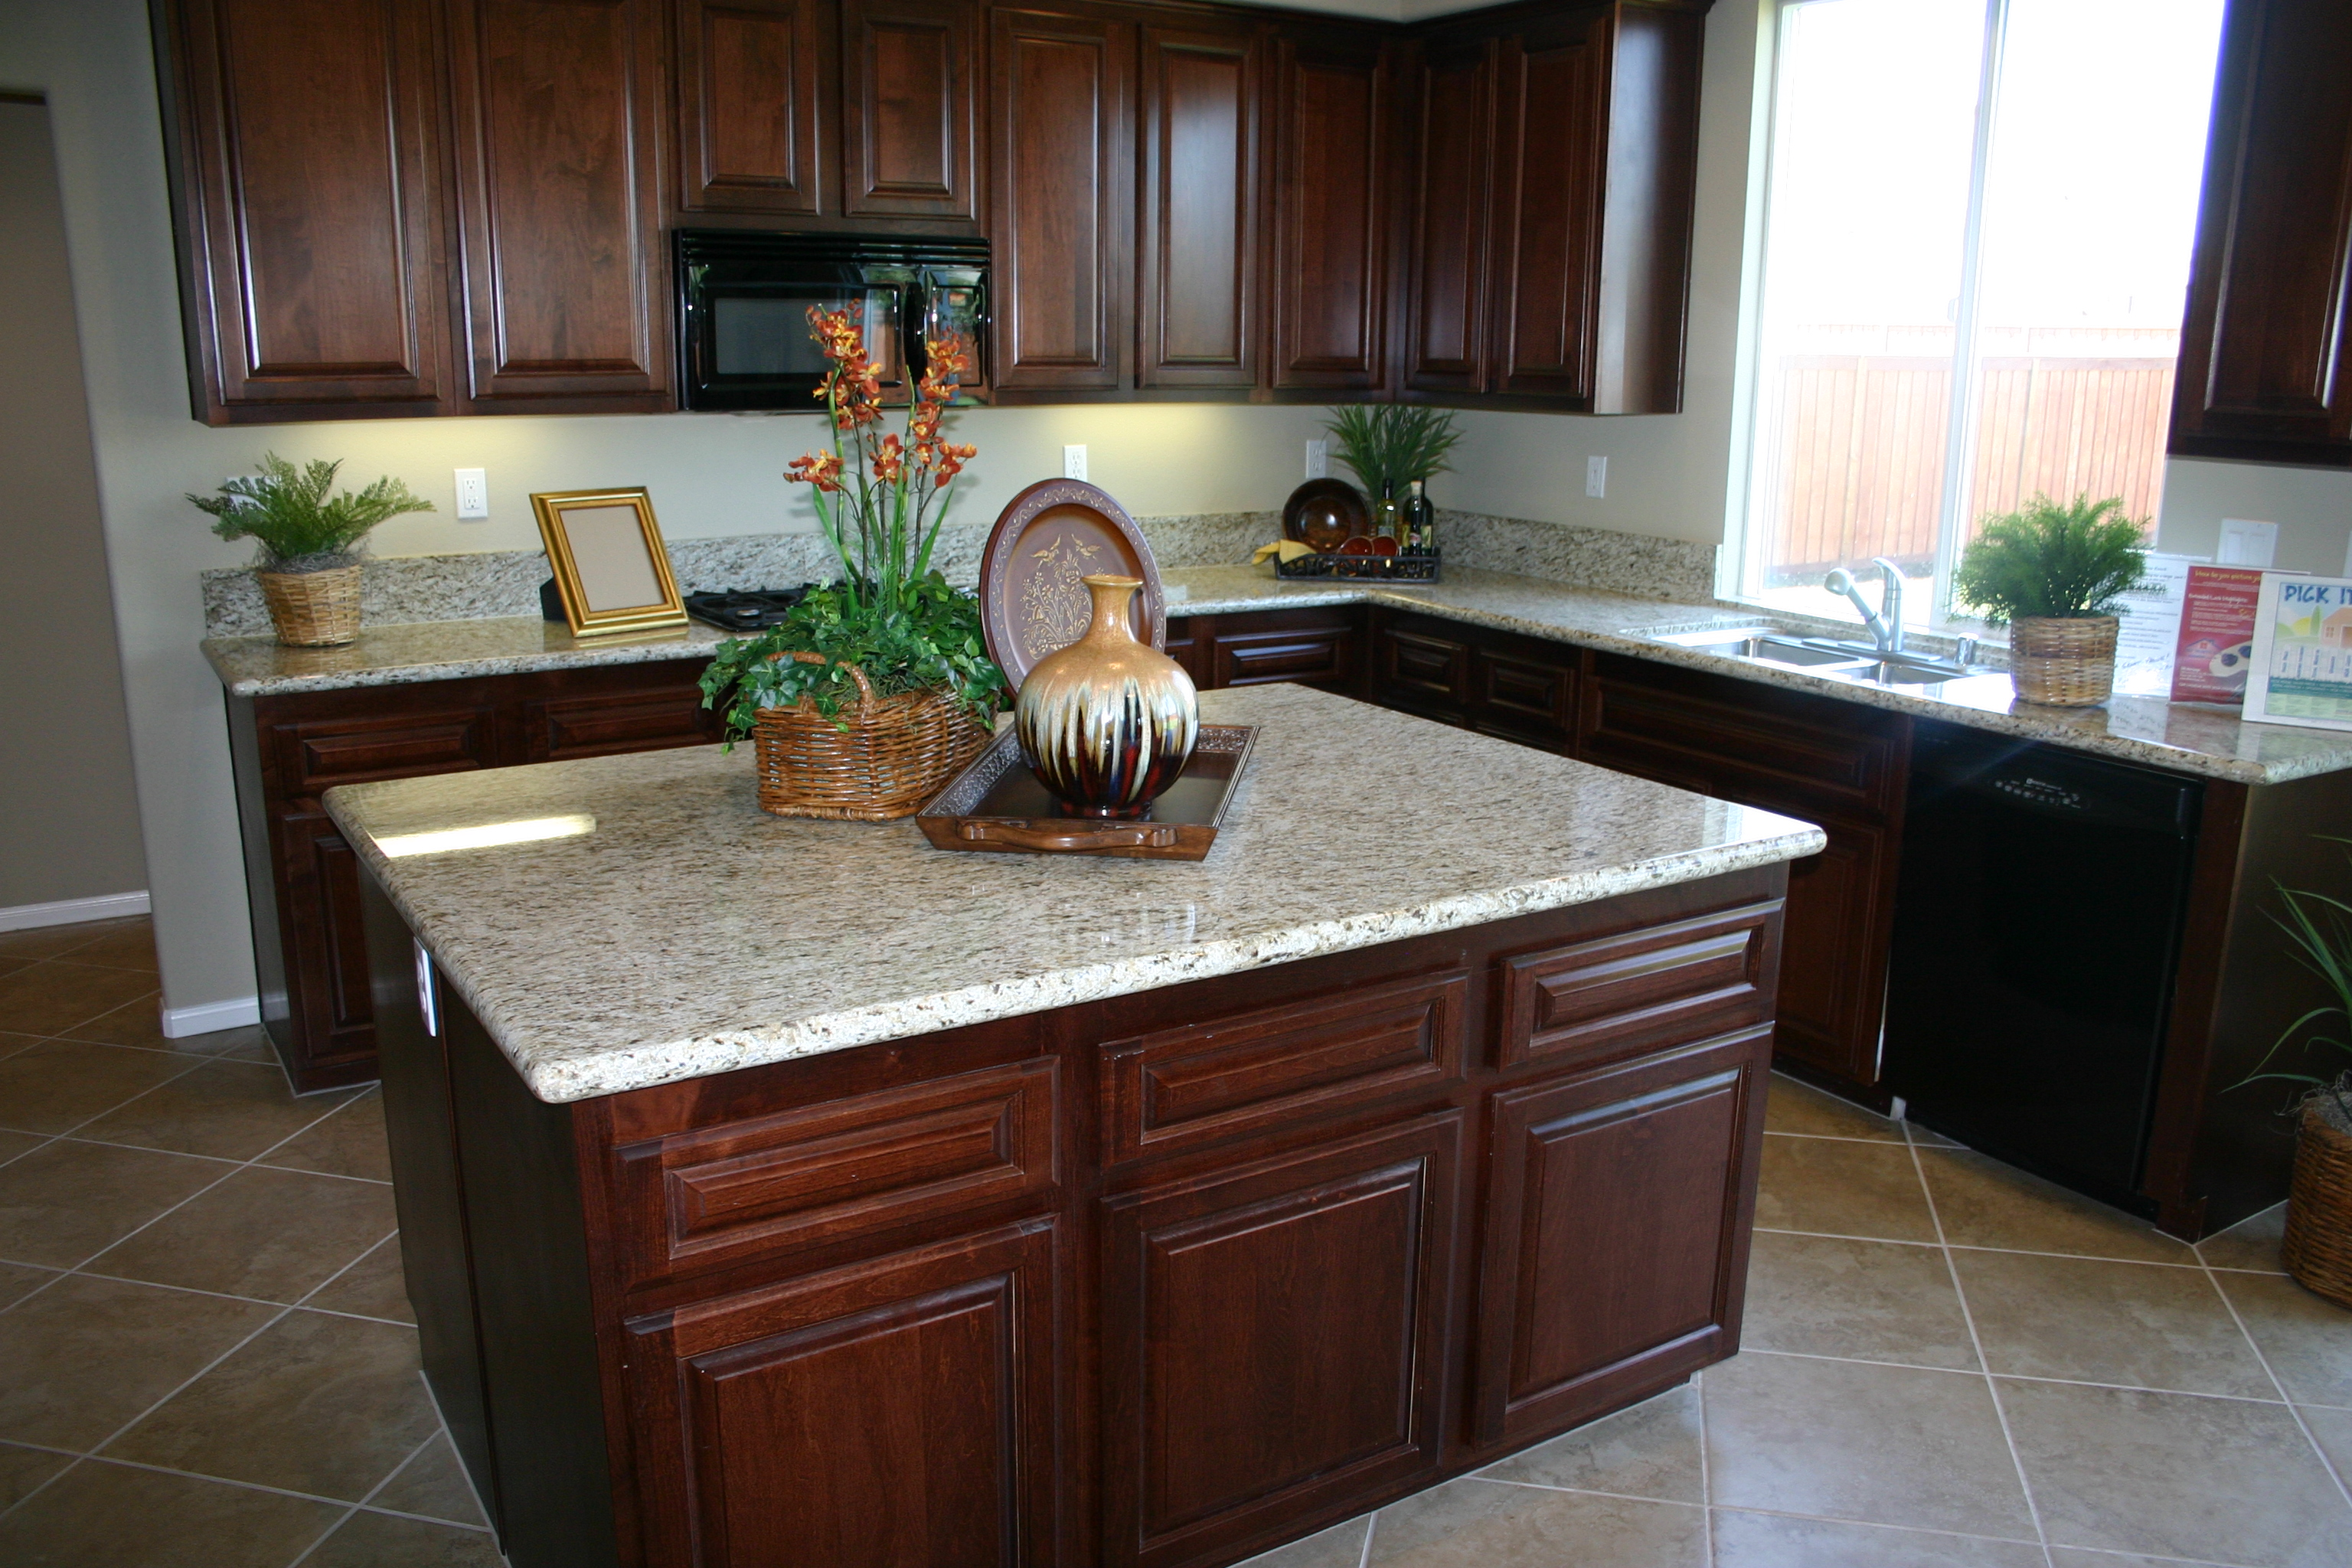 Cartoon kitchen counter gallery - Kitchen Counter Granite16b